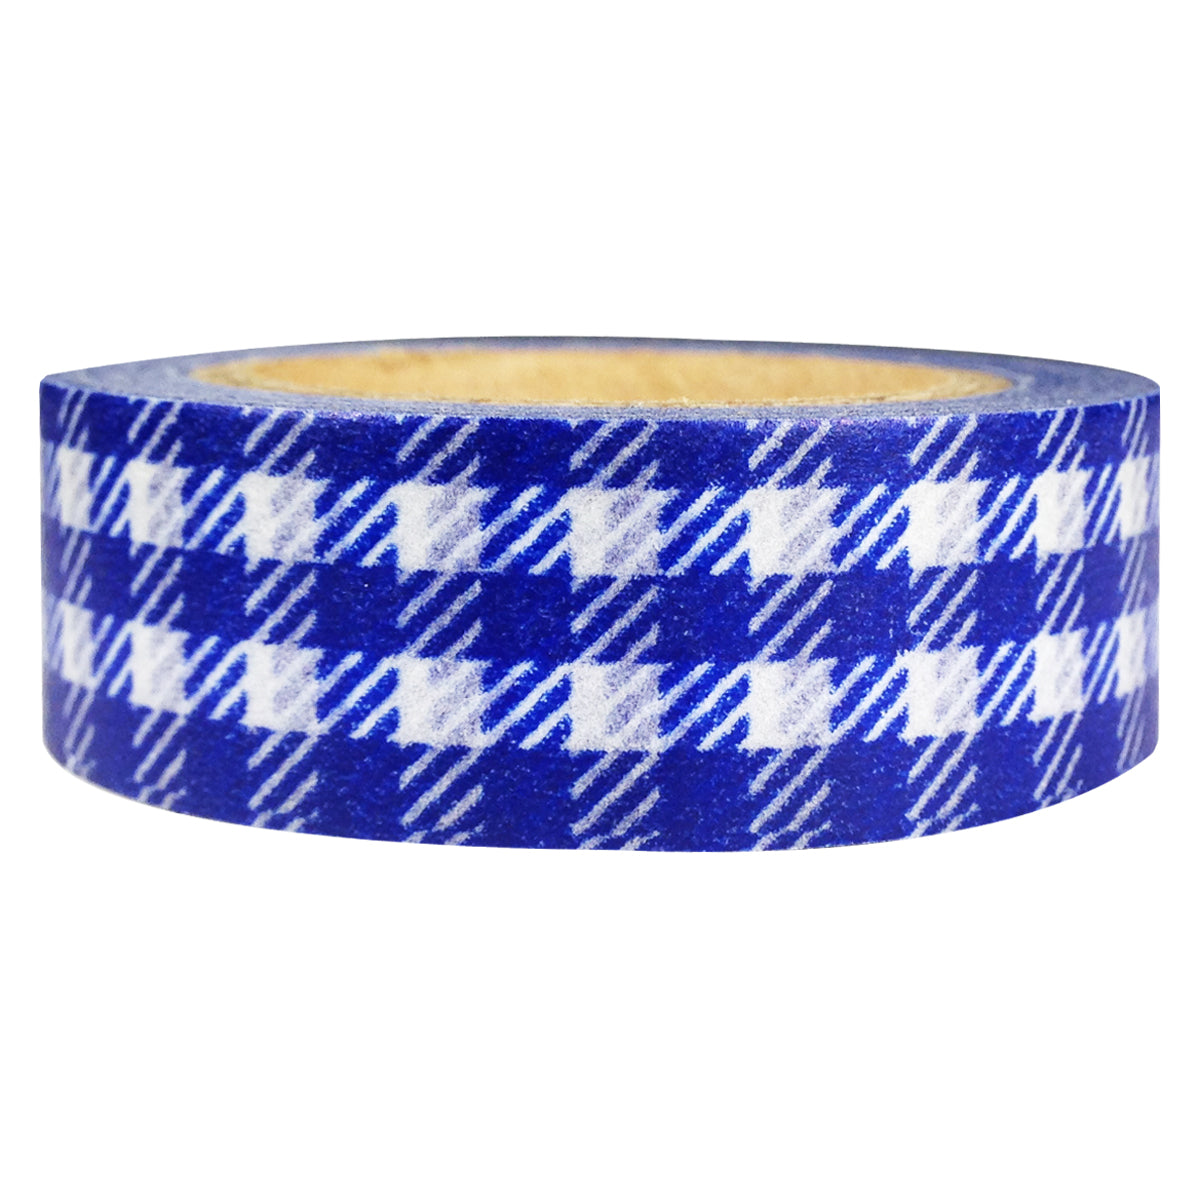 Wrapables Plaid Pattern Japanese Washi Masking Tape